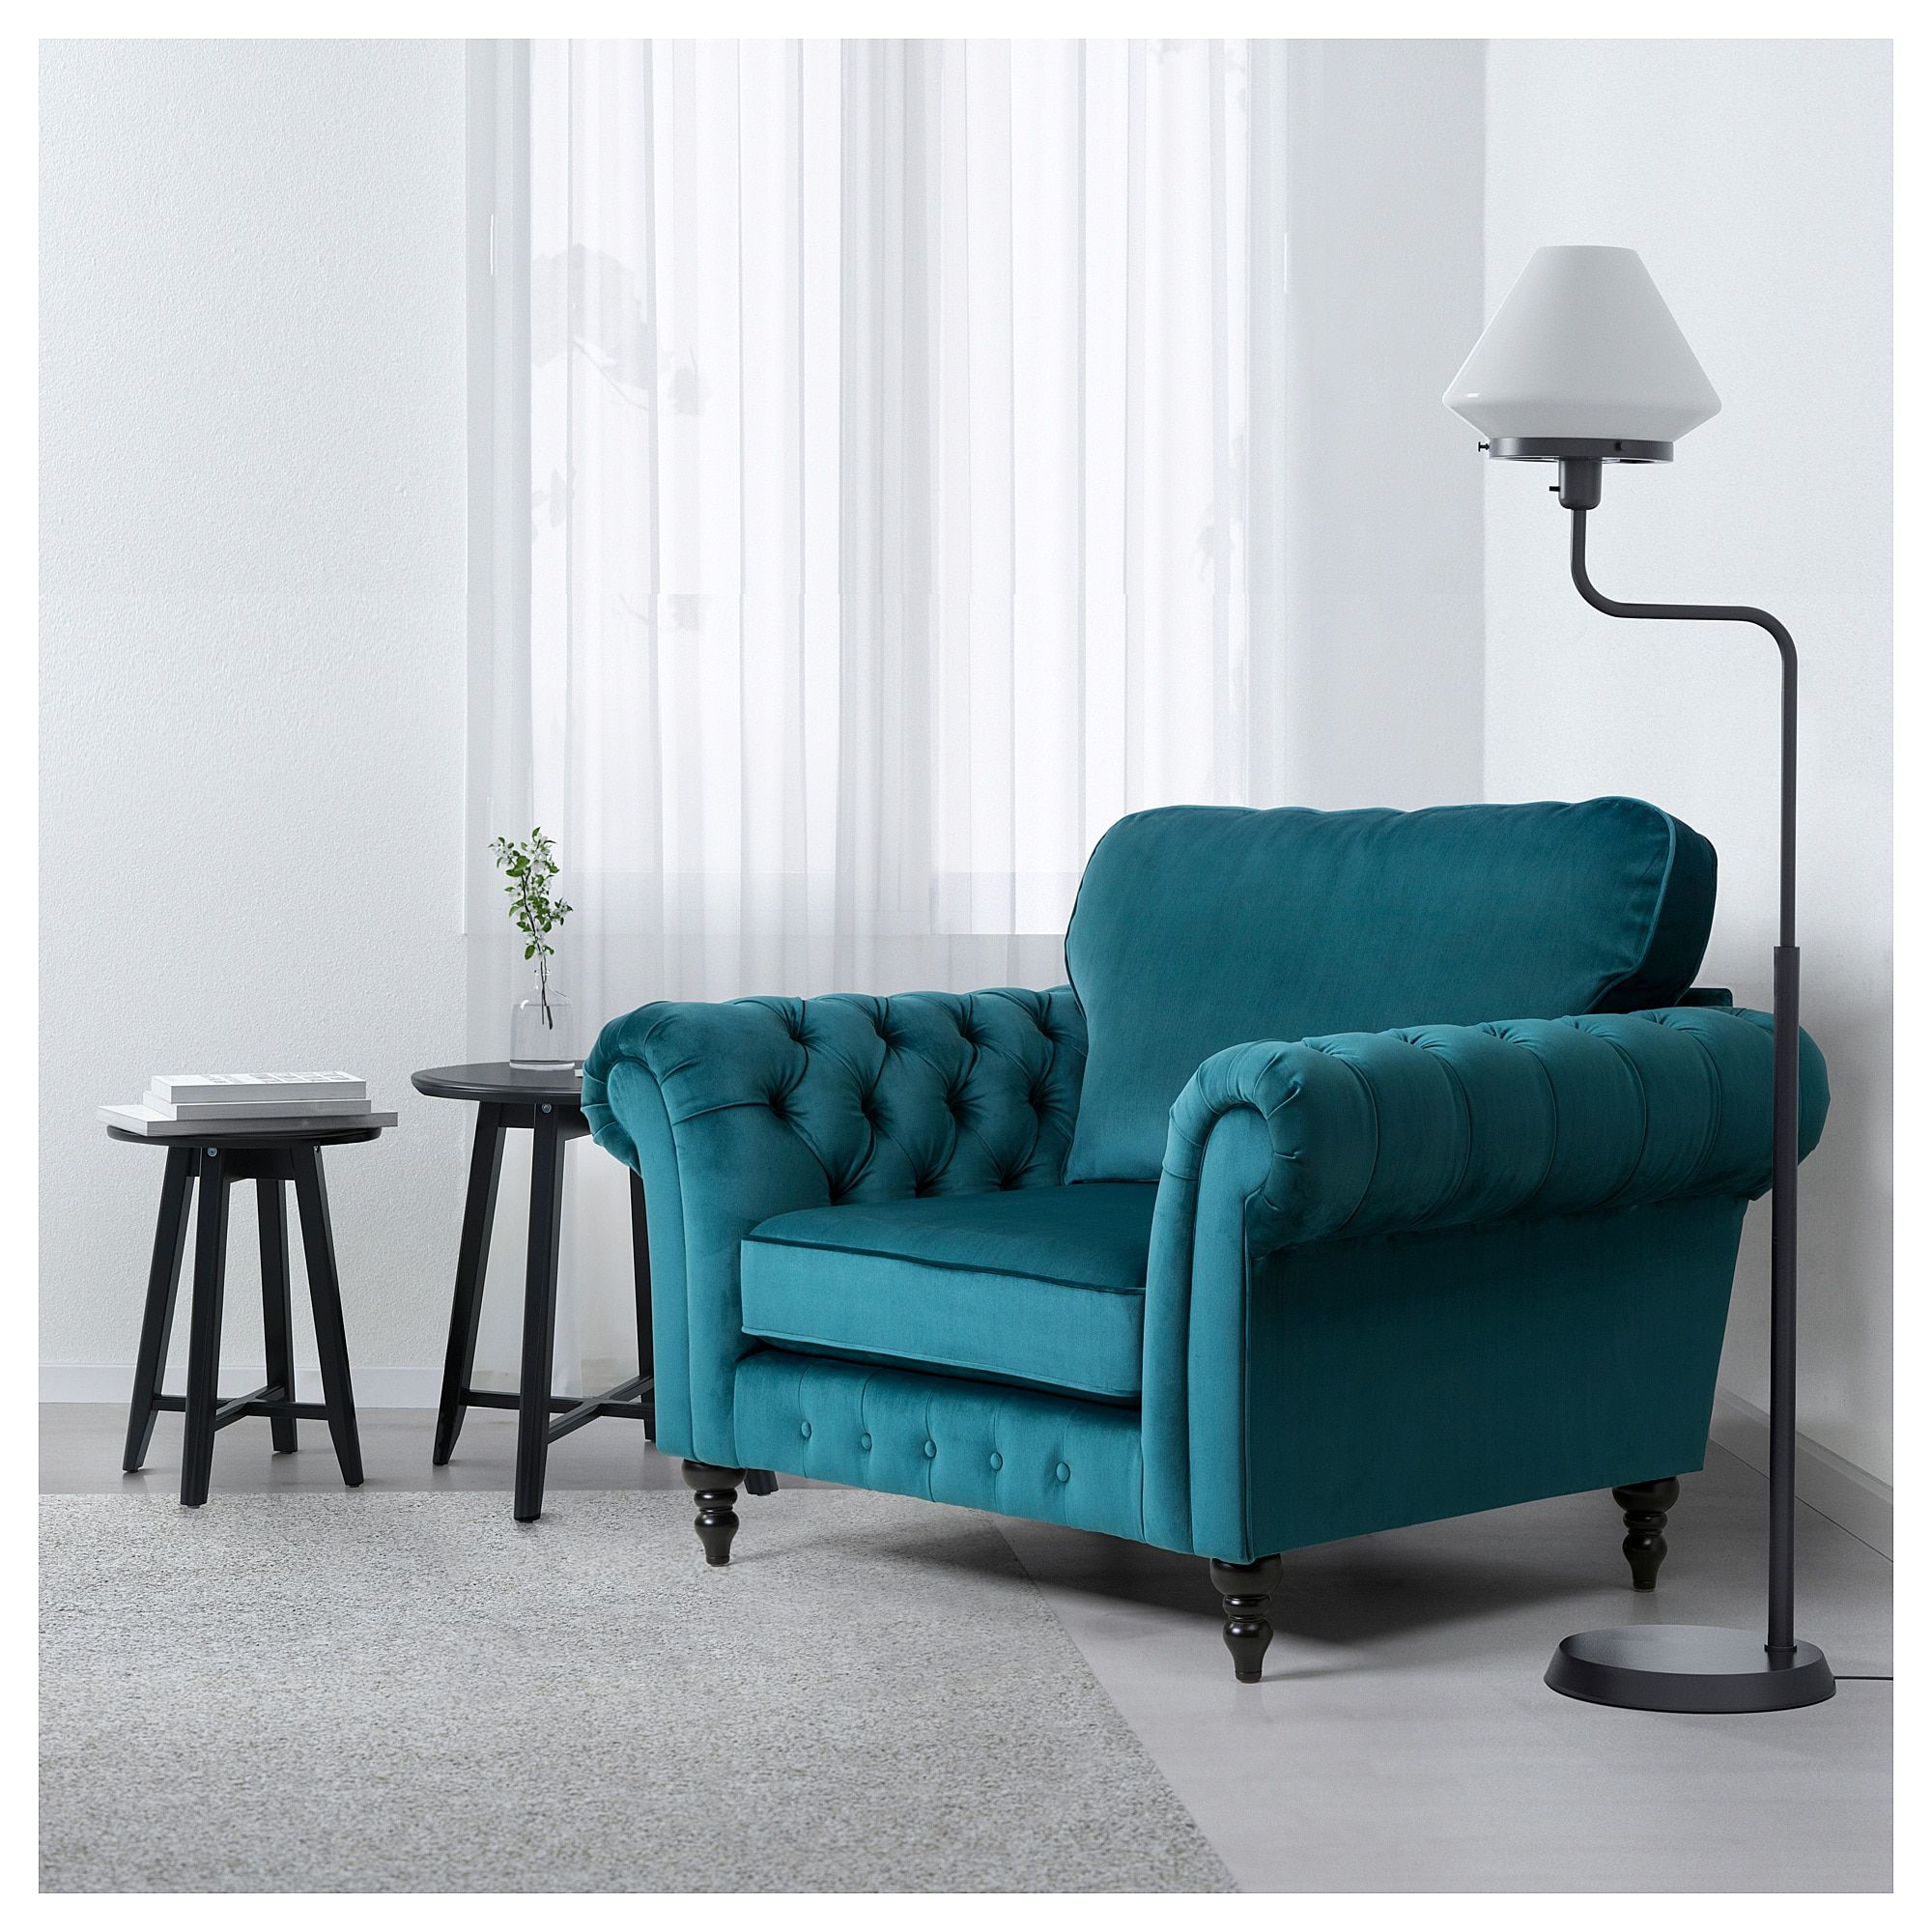 Shop for Furniture, Home Accessories & More (With images